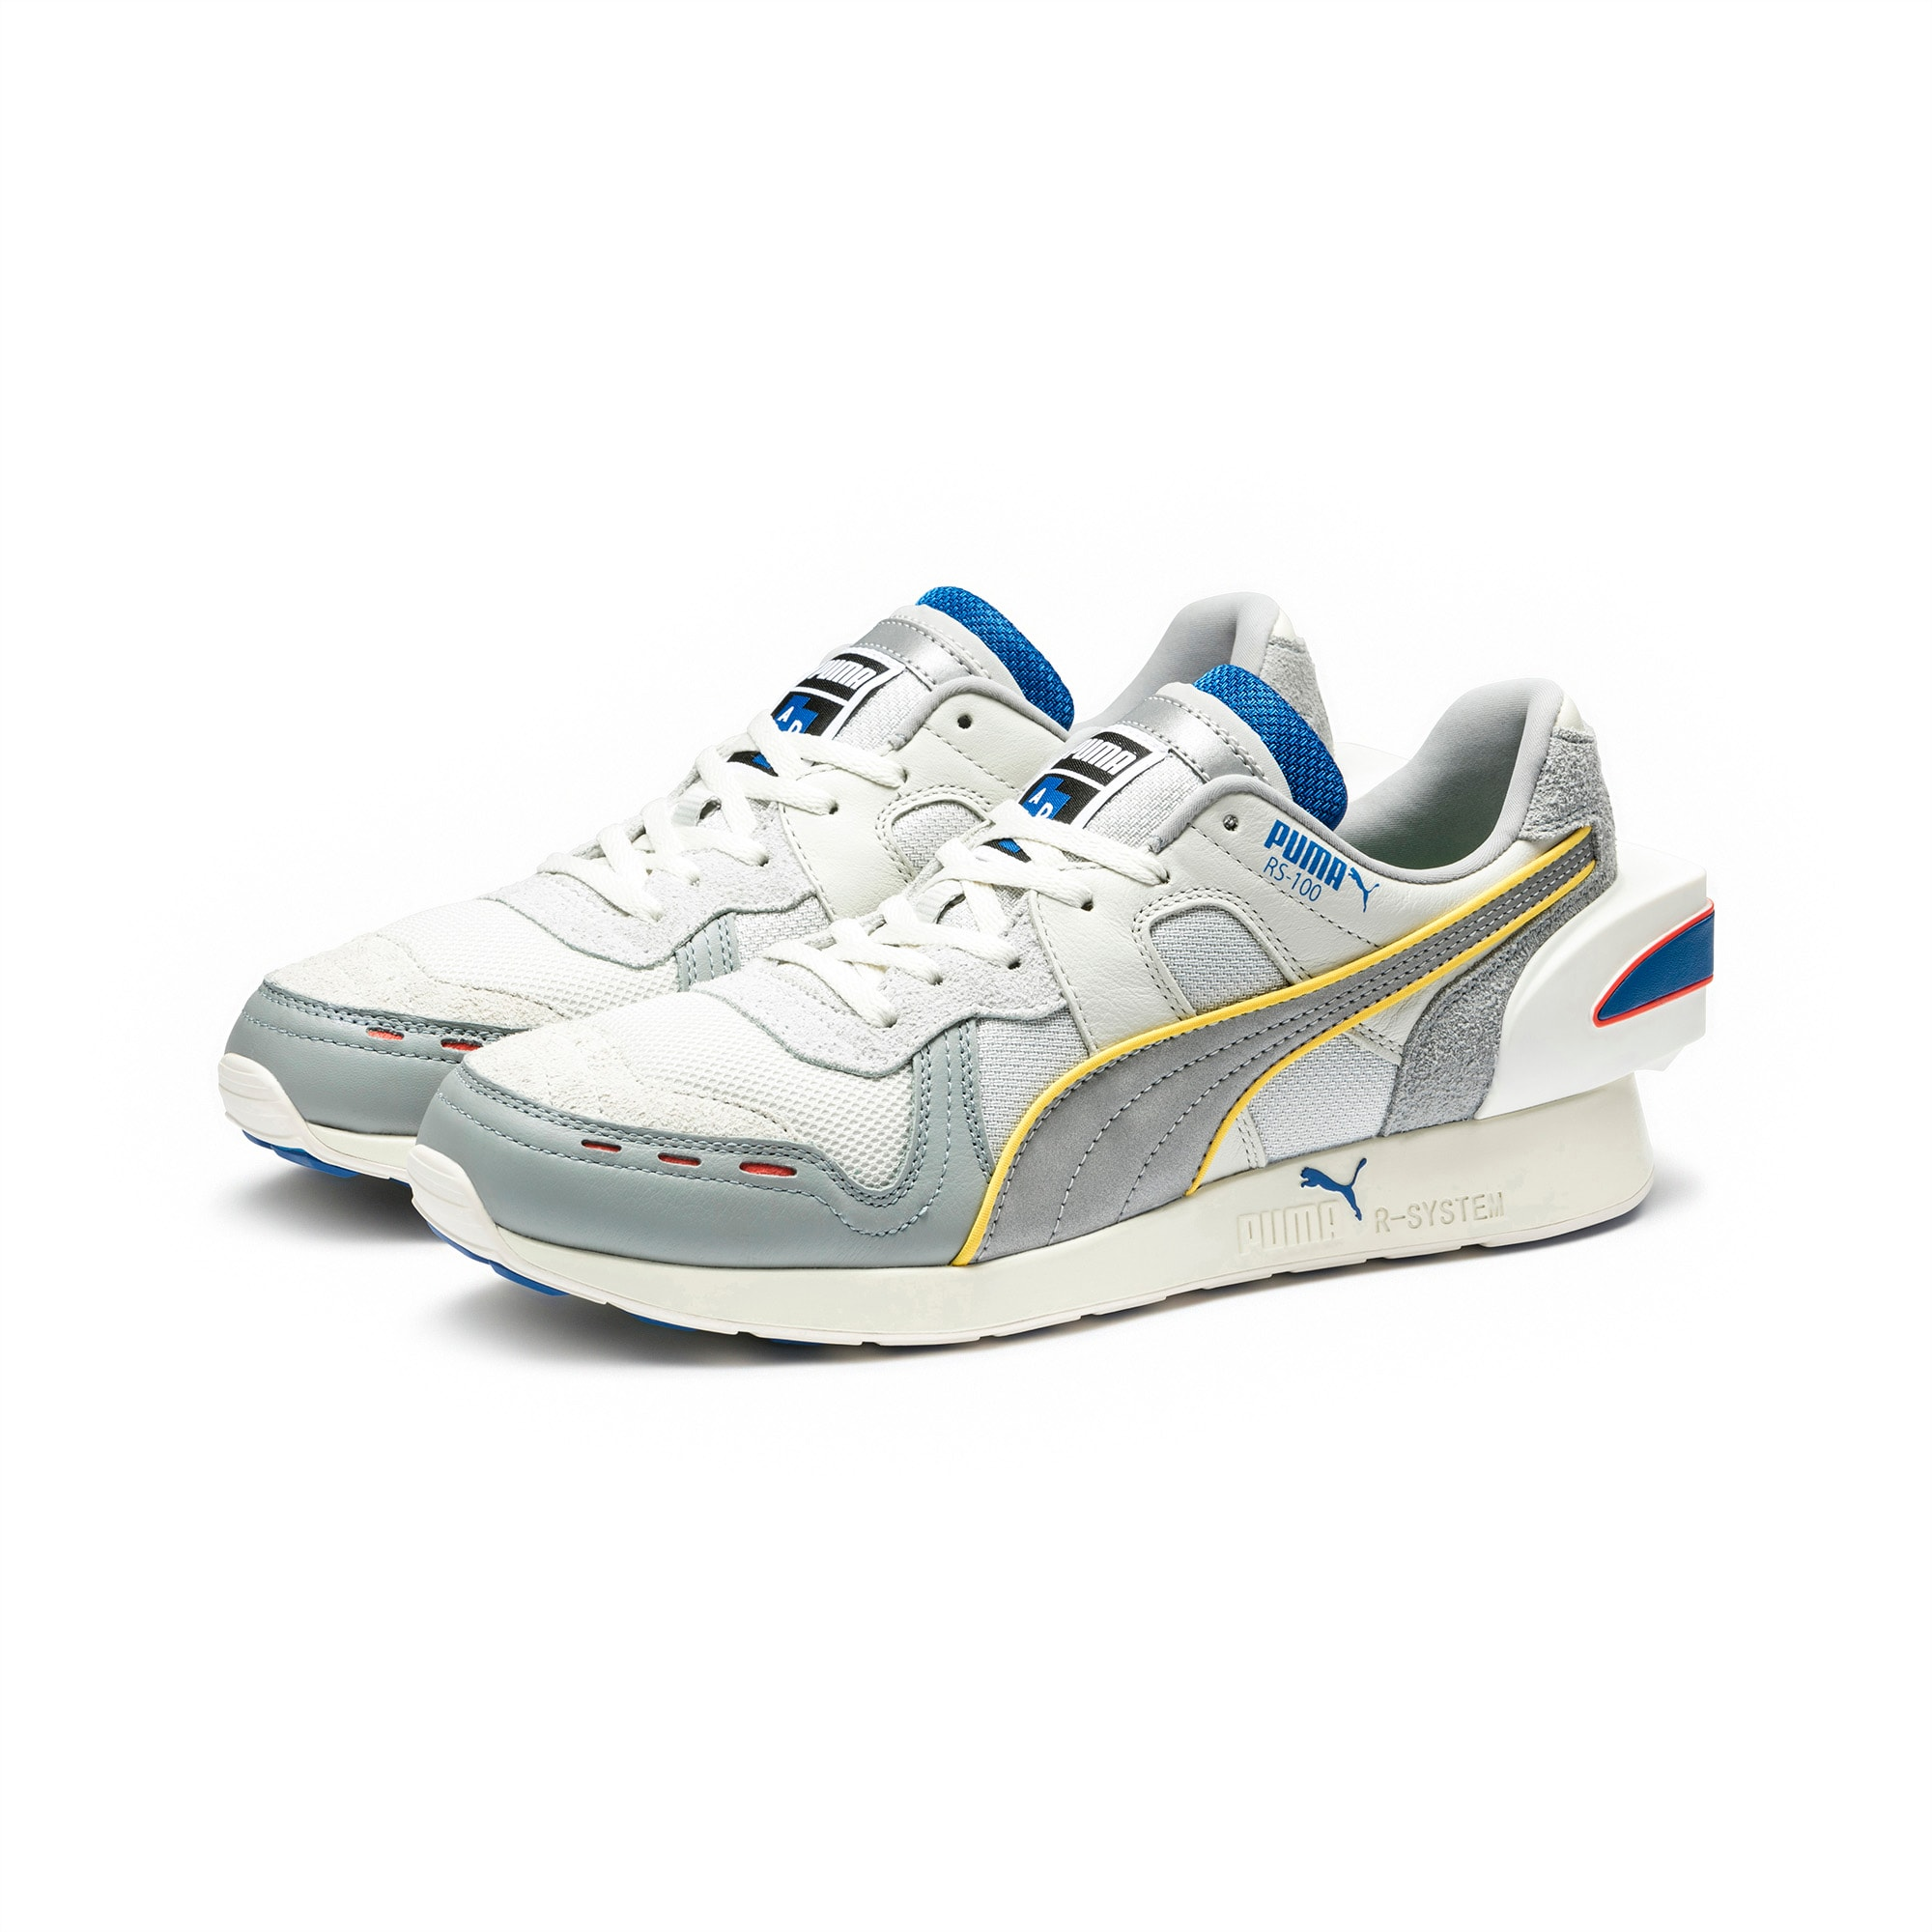 PUMA x ADER ERROR RS 100 Sneakers